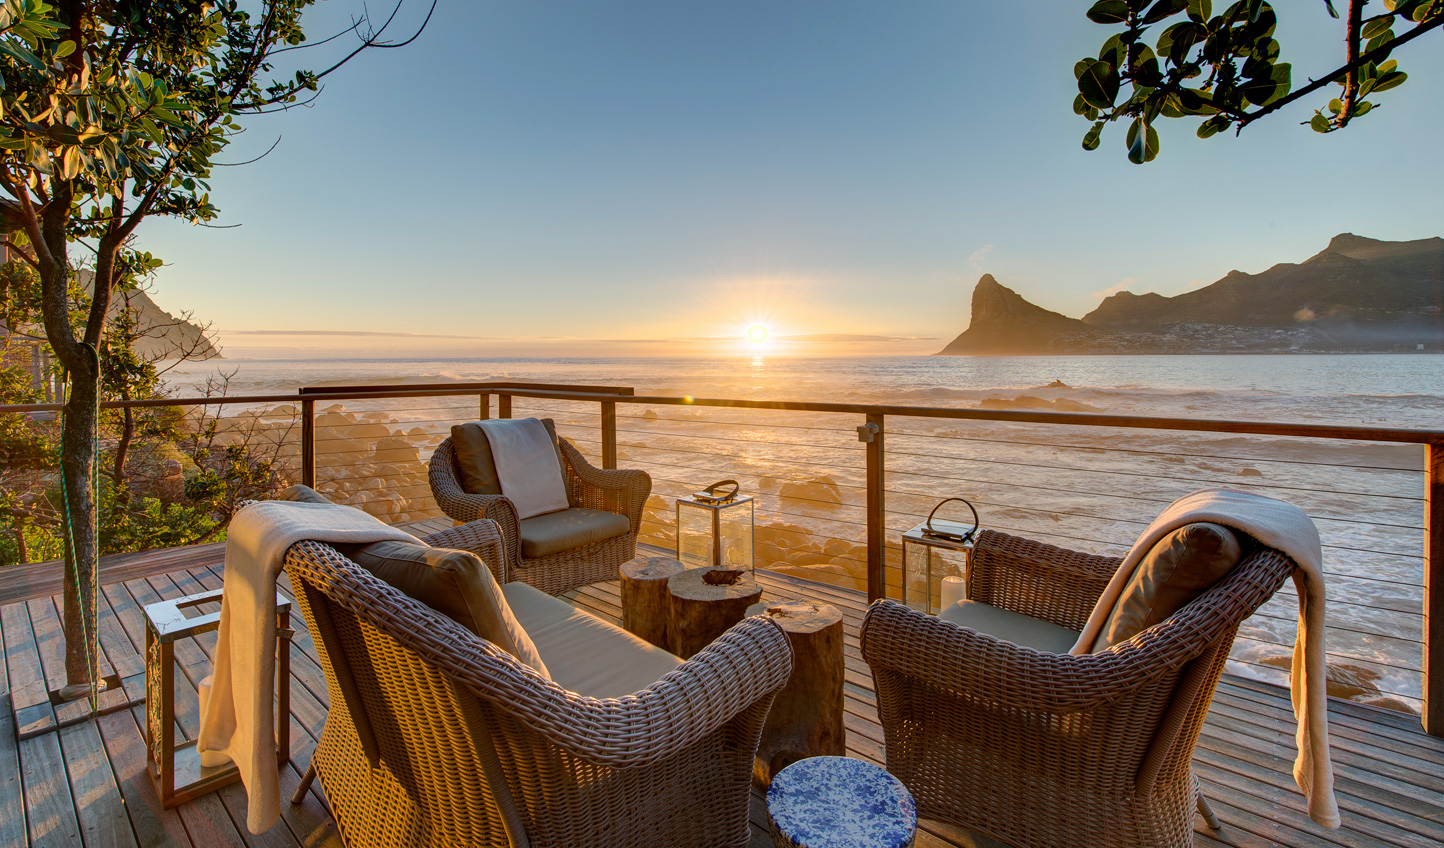 Settle in for sundowners at Tintswalo